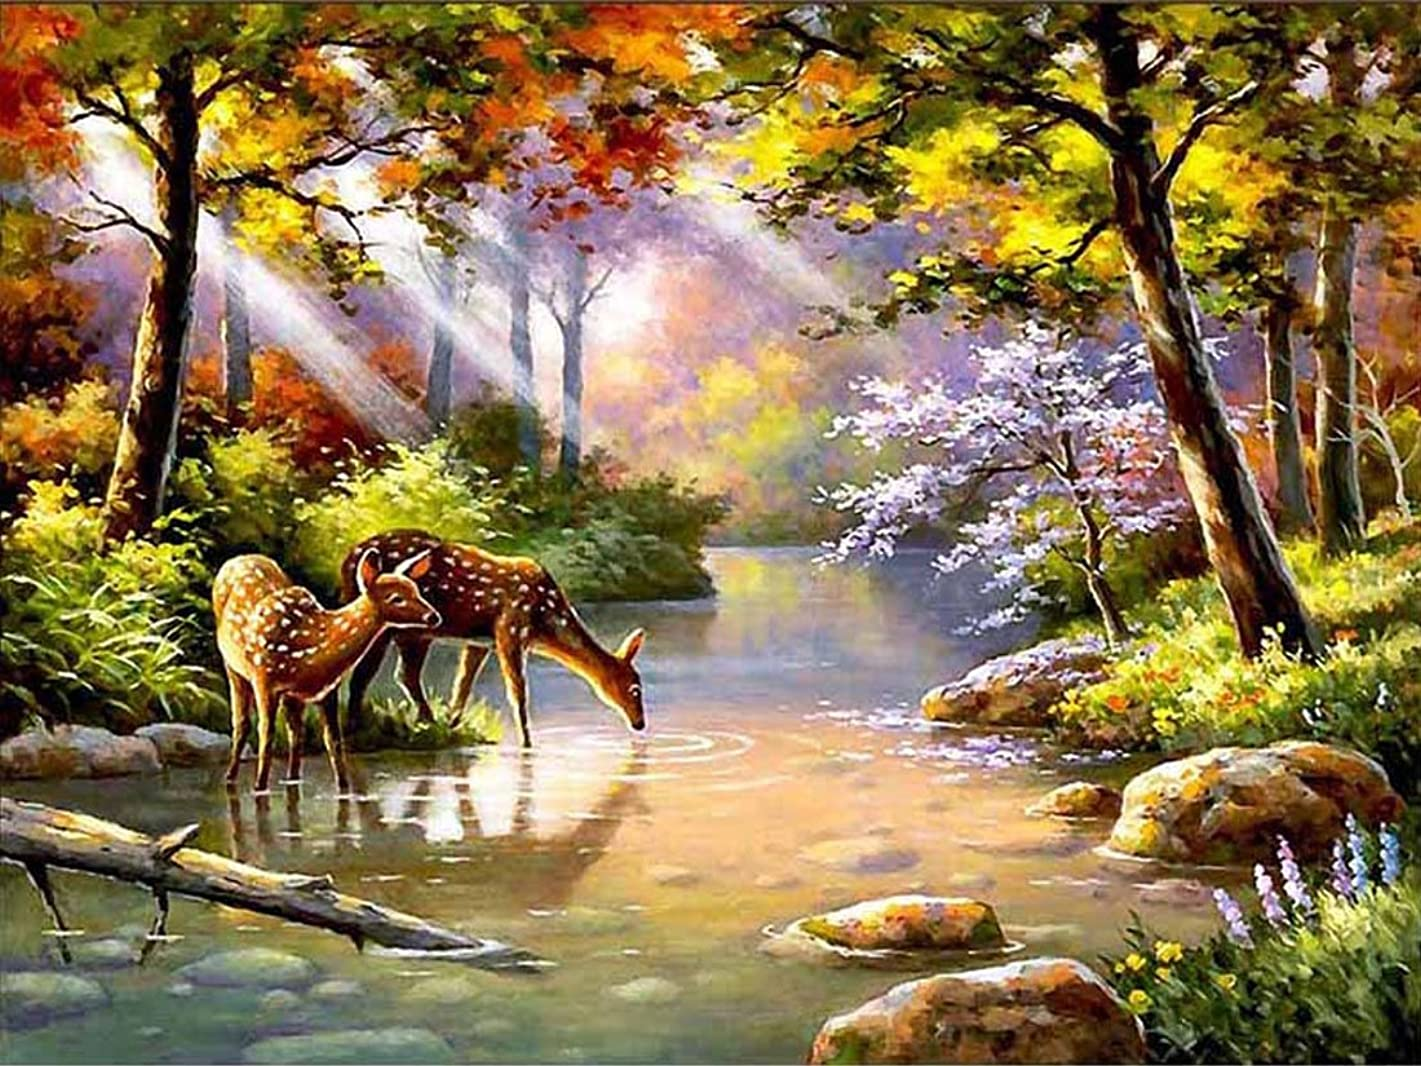 21secret 5D Diamond Diy Painting Full Drill Handmade Deer Drink Water in Forest Scenery Cross Stitch Home Decor Embroidery Kit